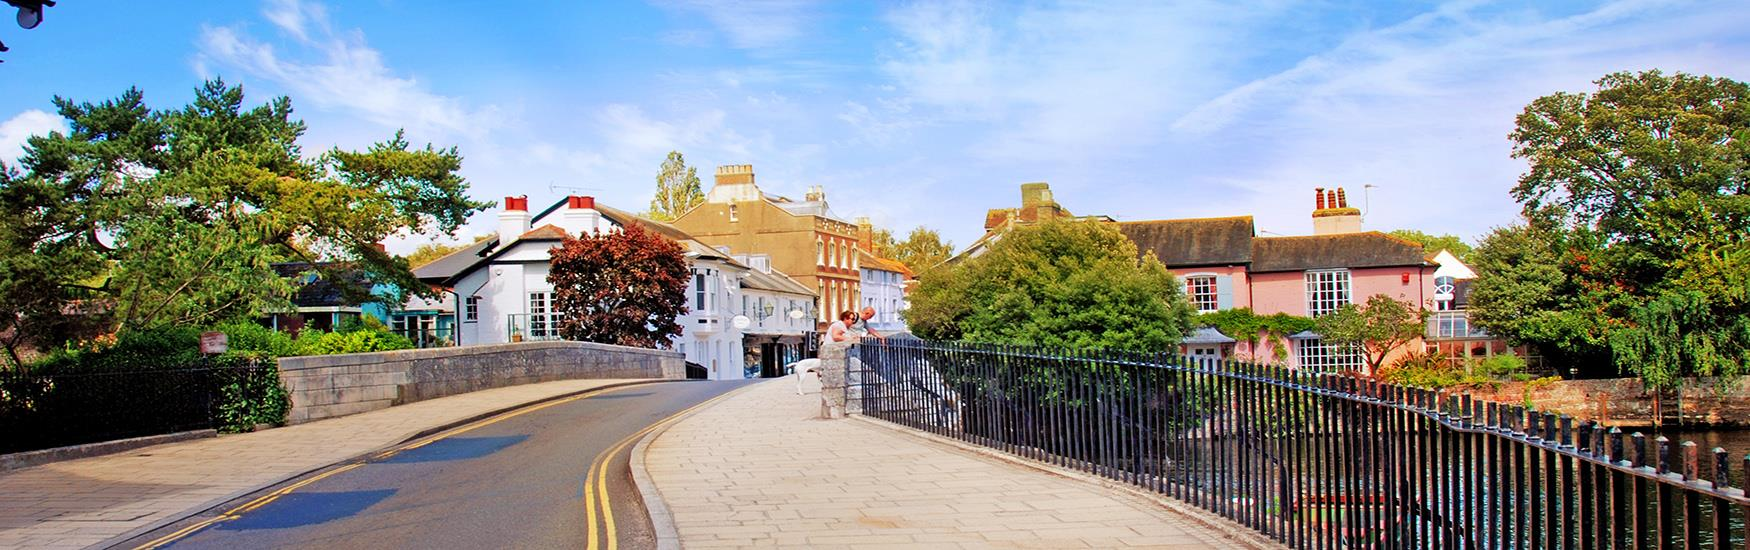 Lovely shot of a Christchurch road over the bridge leading into the town on a sunny day